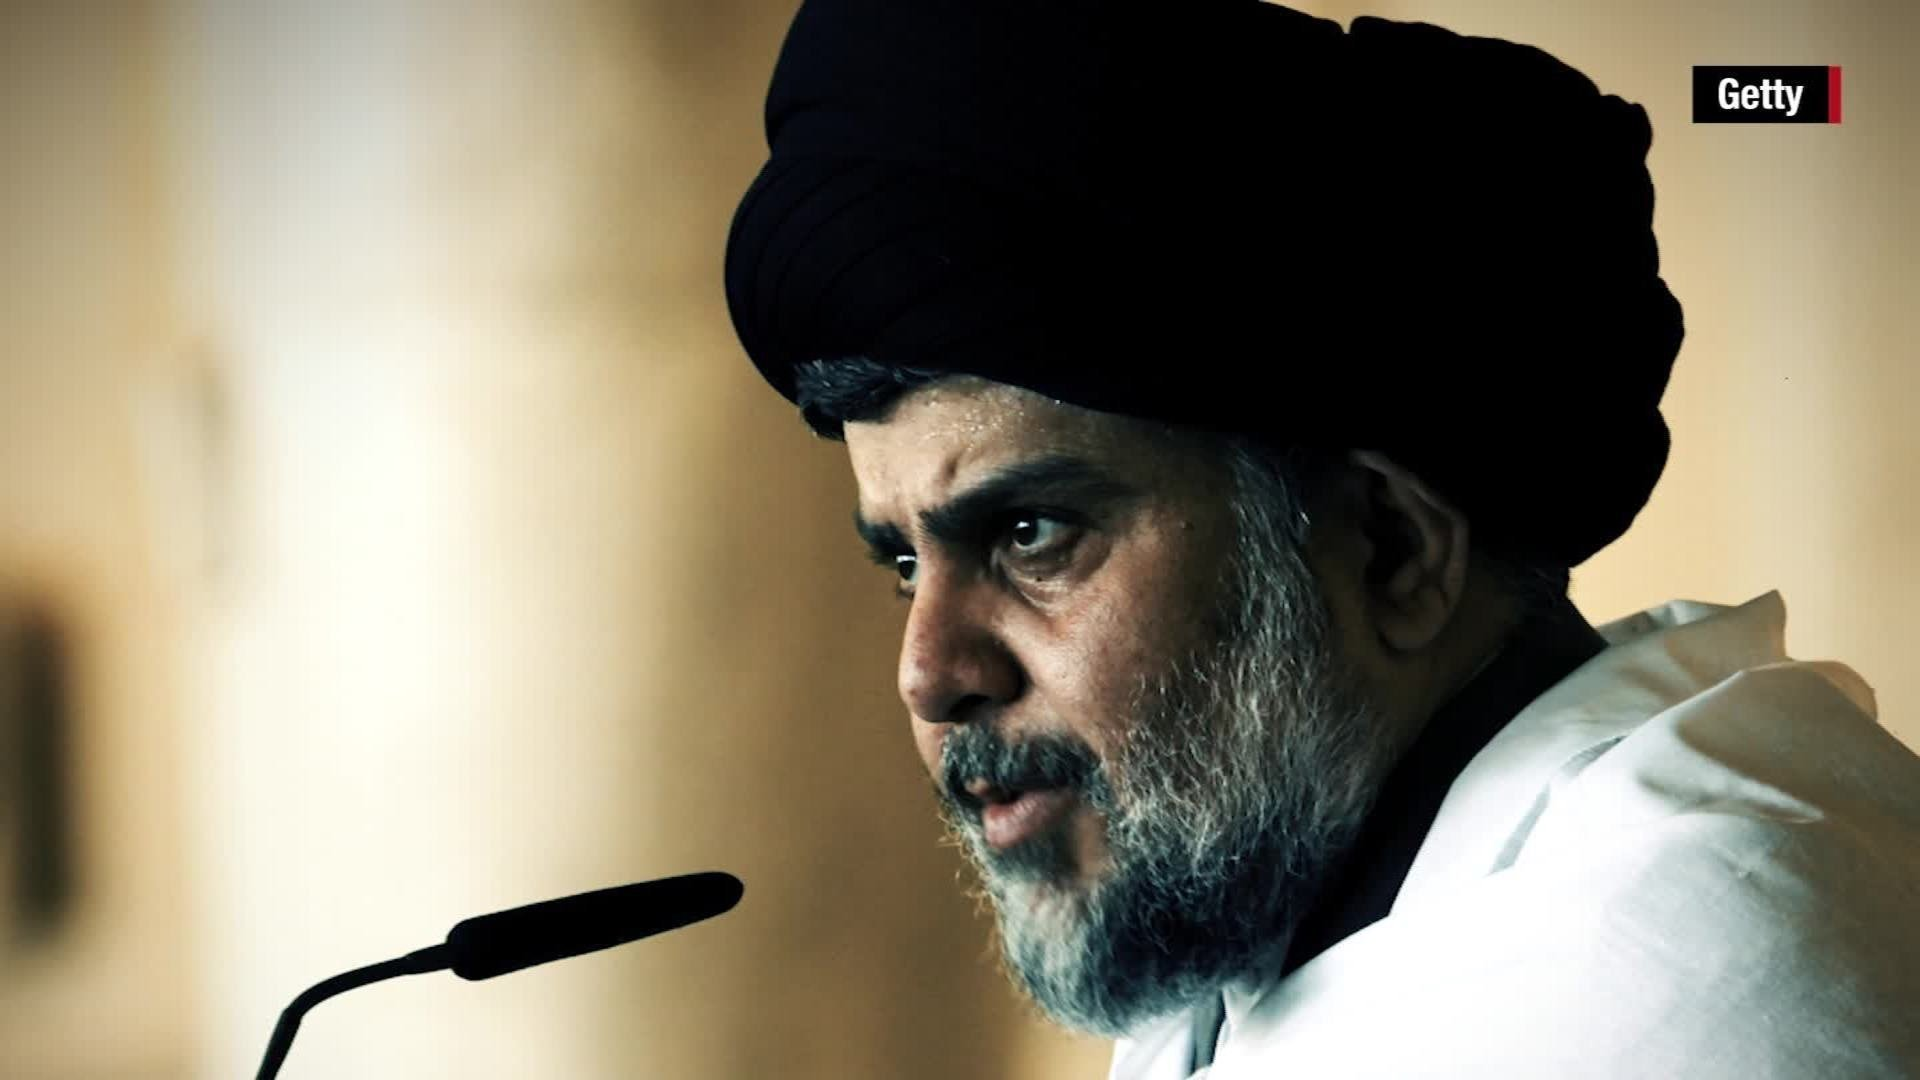 Anti-American cleric Muqtada al-Sadr's coalition election victory in Iraq raises the prospect that the man many US military officials hold responsible for the deaths of US troops could become a kingmaker in Iraqi politics.